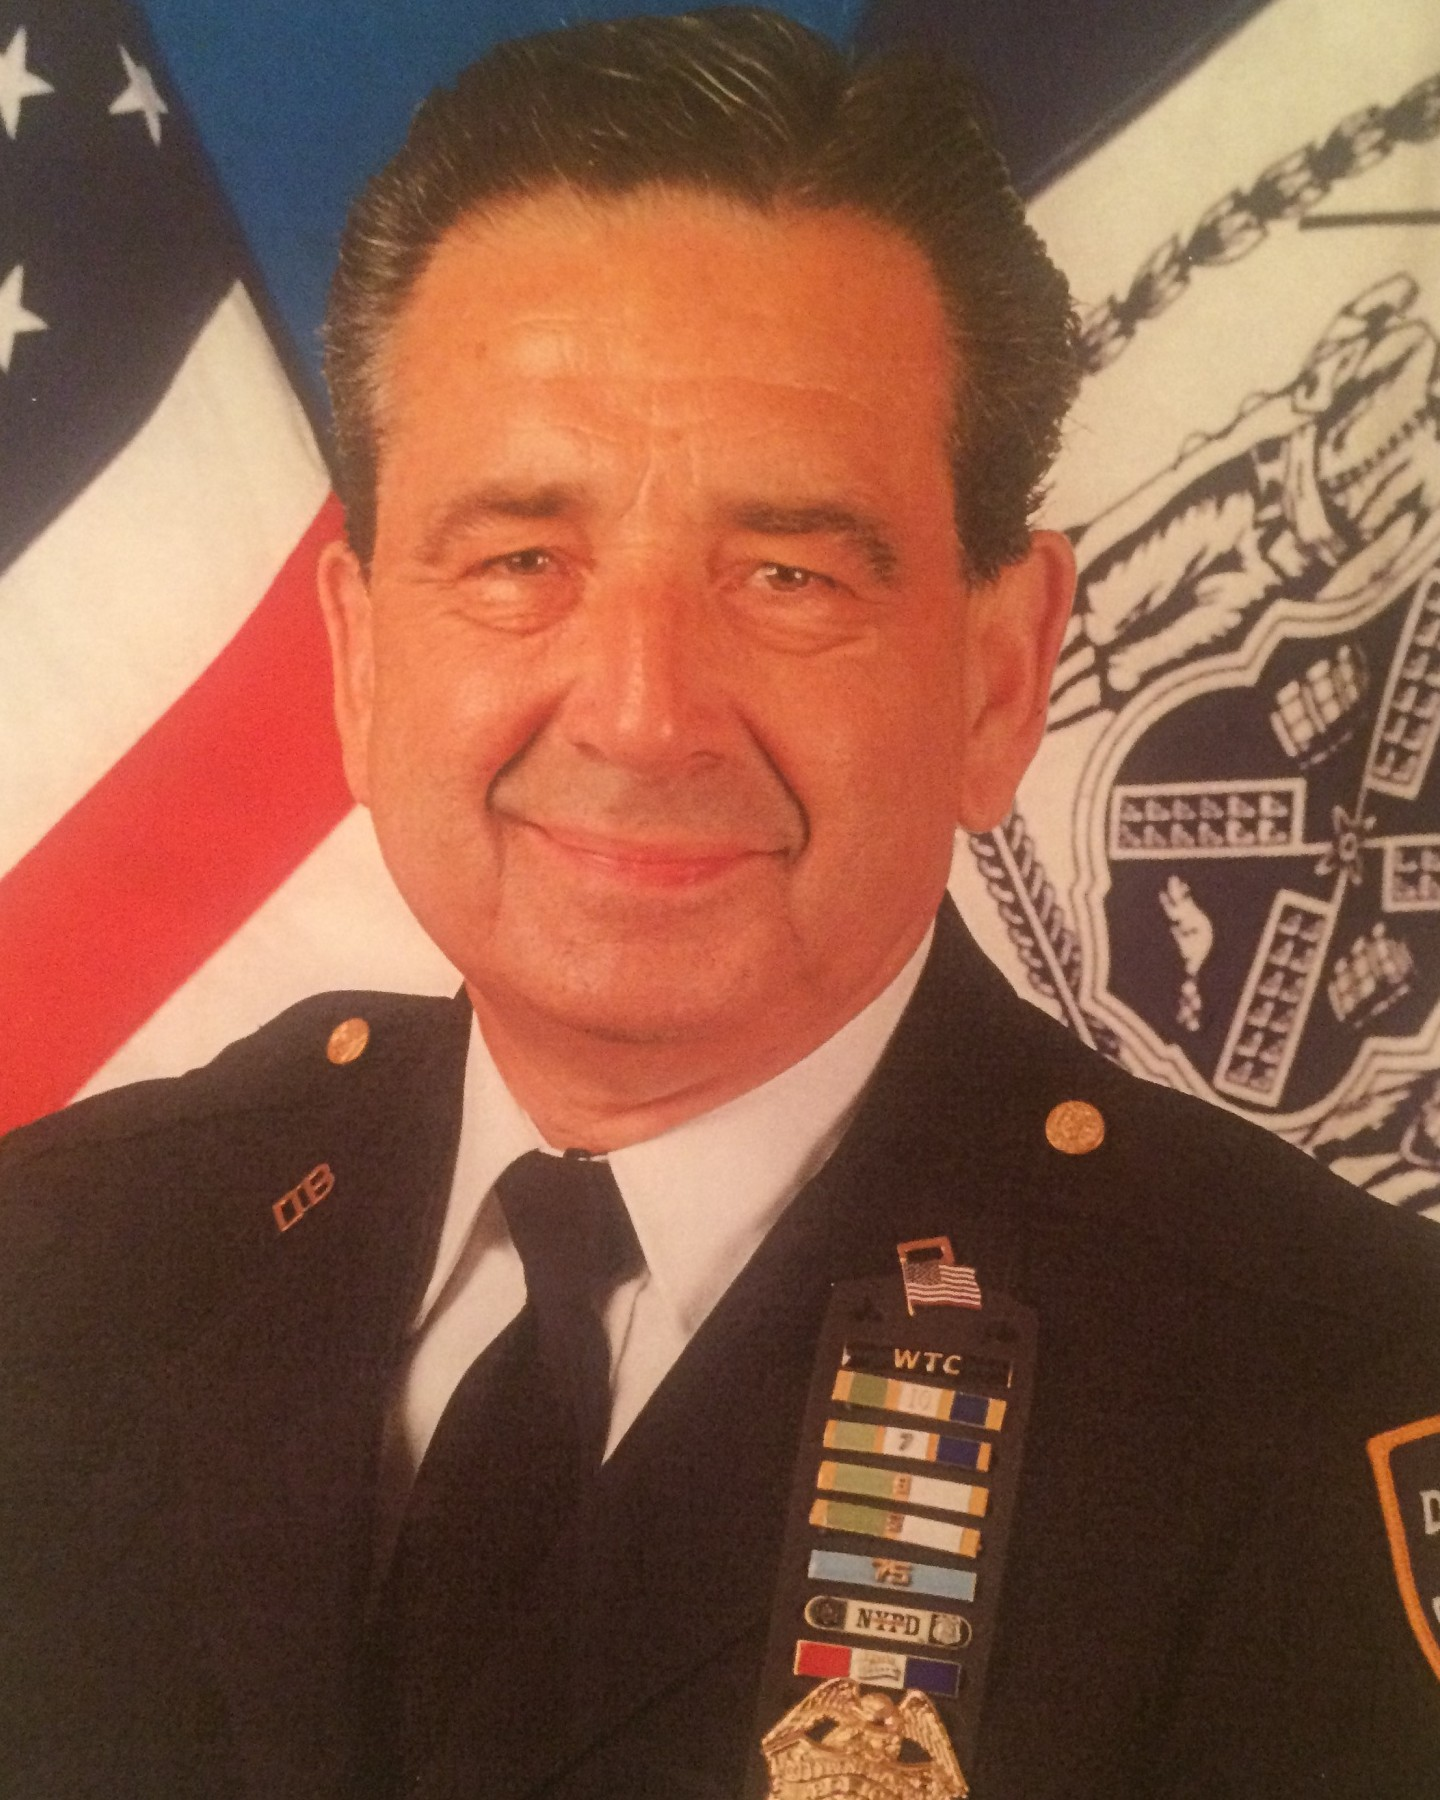 Sergeant Gerard Thomas Beyrodt | New York City Police Department, New York